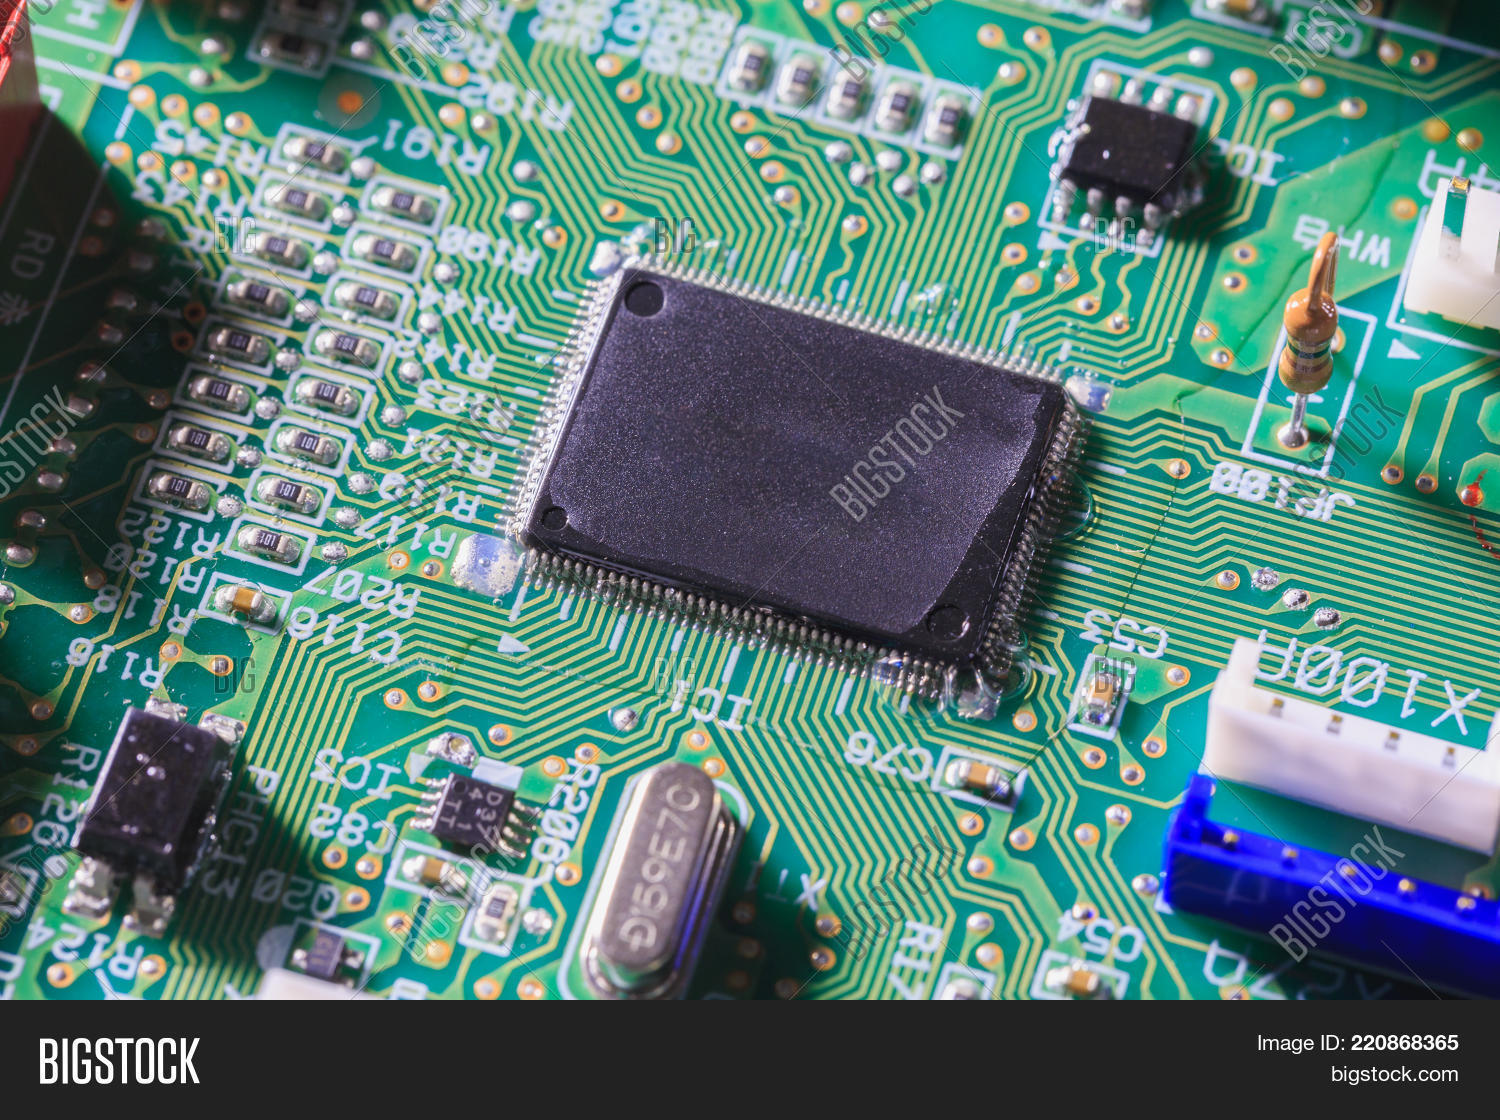 Computer Chip On Green Image Photo Free Trial Bigstock Stockfoto Printed Circuit Board Pcb Used In Industrial Electronic Or With Compone